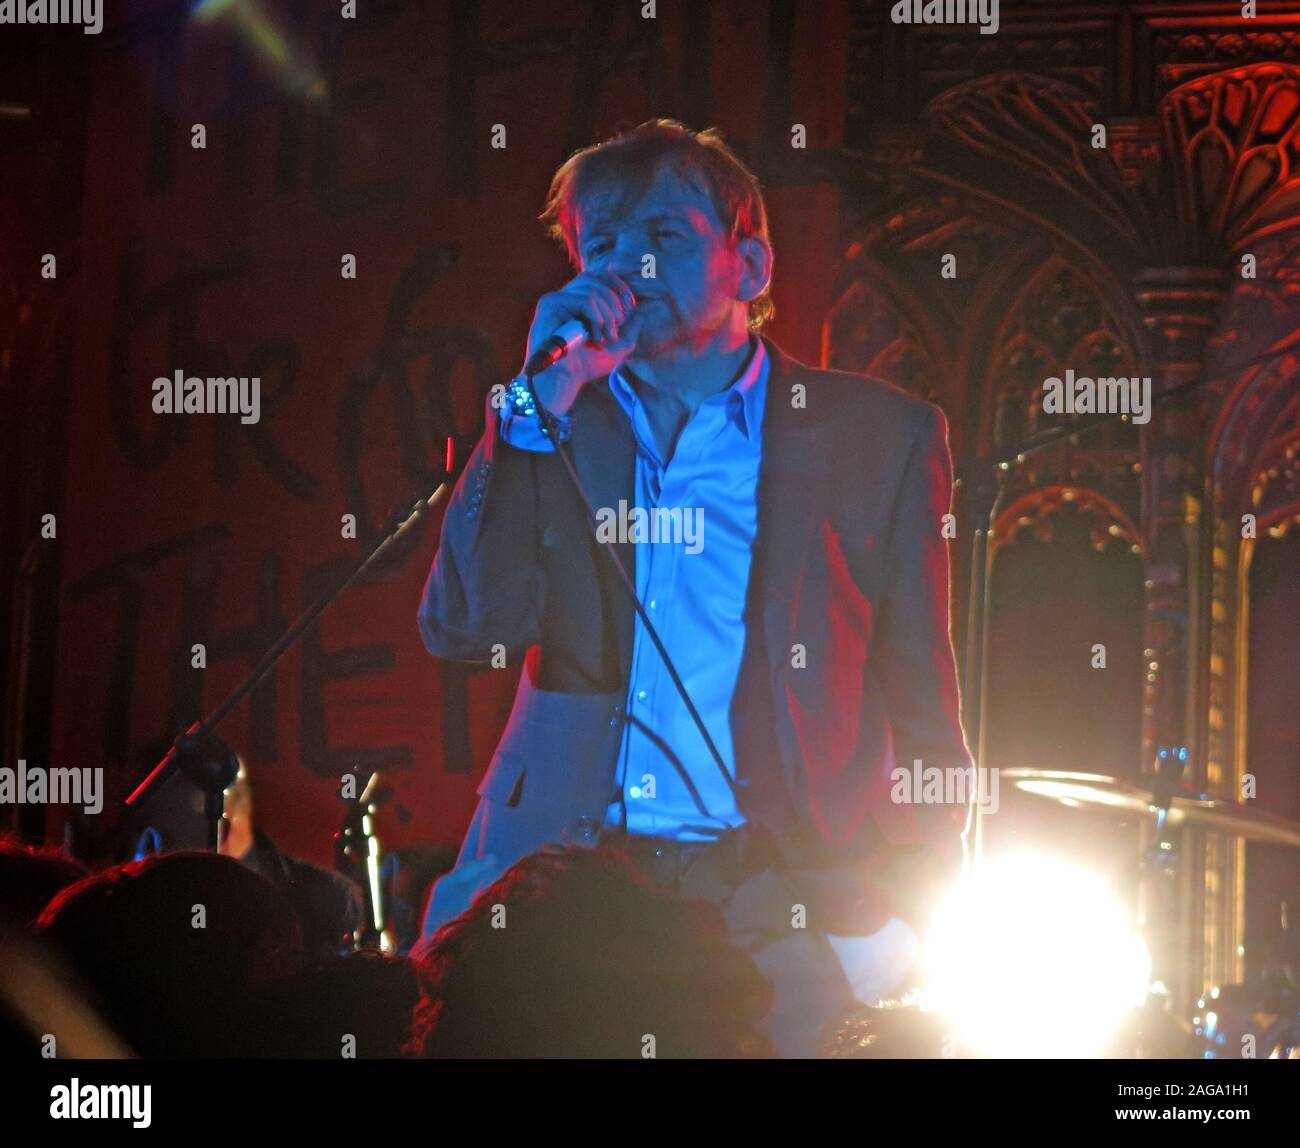 HotpixUK,@HotpixUK,GoTonySmith,Manchester Cathedral,gig,live,tour,2014,on stage,Daren Garratt,Dave Spurr,bass,Elena Poulou,Pete Greenway,guitar,Cathedral and Collegiate Church of St Mary,St Denys and St George,MES on vocals with microphone,MES vocals,Mark E Smith on stage,TheFallMancCath15-05-2014,Mark E Smith and The Fall perform live,Mark E Smith and The Fall,perform,performing,15th May 2014,The Fall 2014,MarkESmith,Mark.E.Smith,post-punk,band,group,Prestwich,cult,Mark E Smith of The Fall,Manchester Legend,1957-2018,Manchester artist,Manchester musician